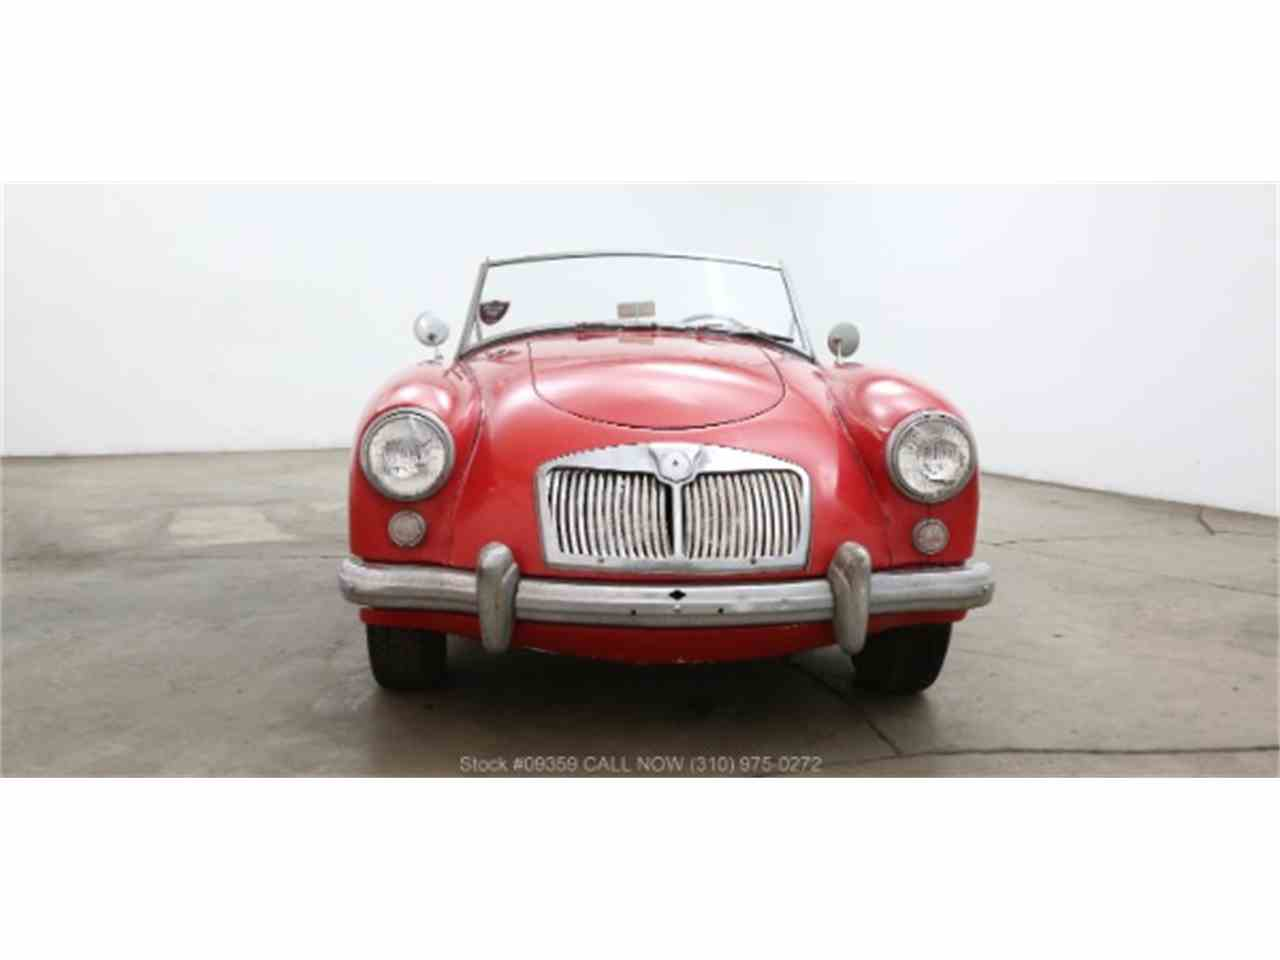 Large Picture of Classic 1958 MG Antique - $12,750.00 - MZ7G